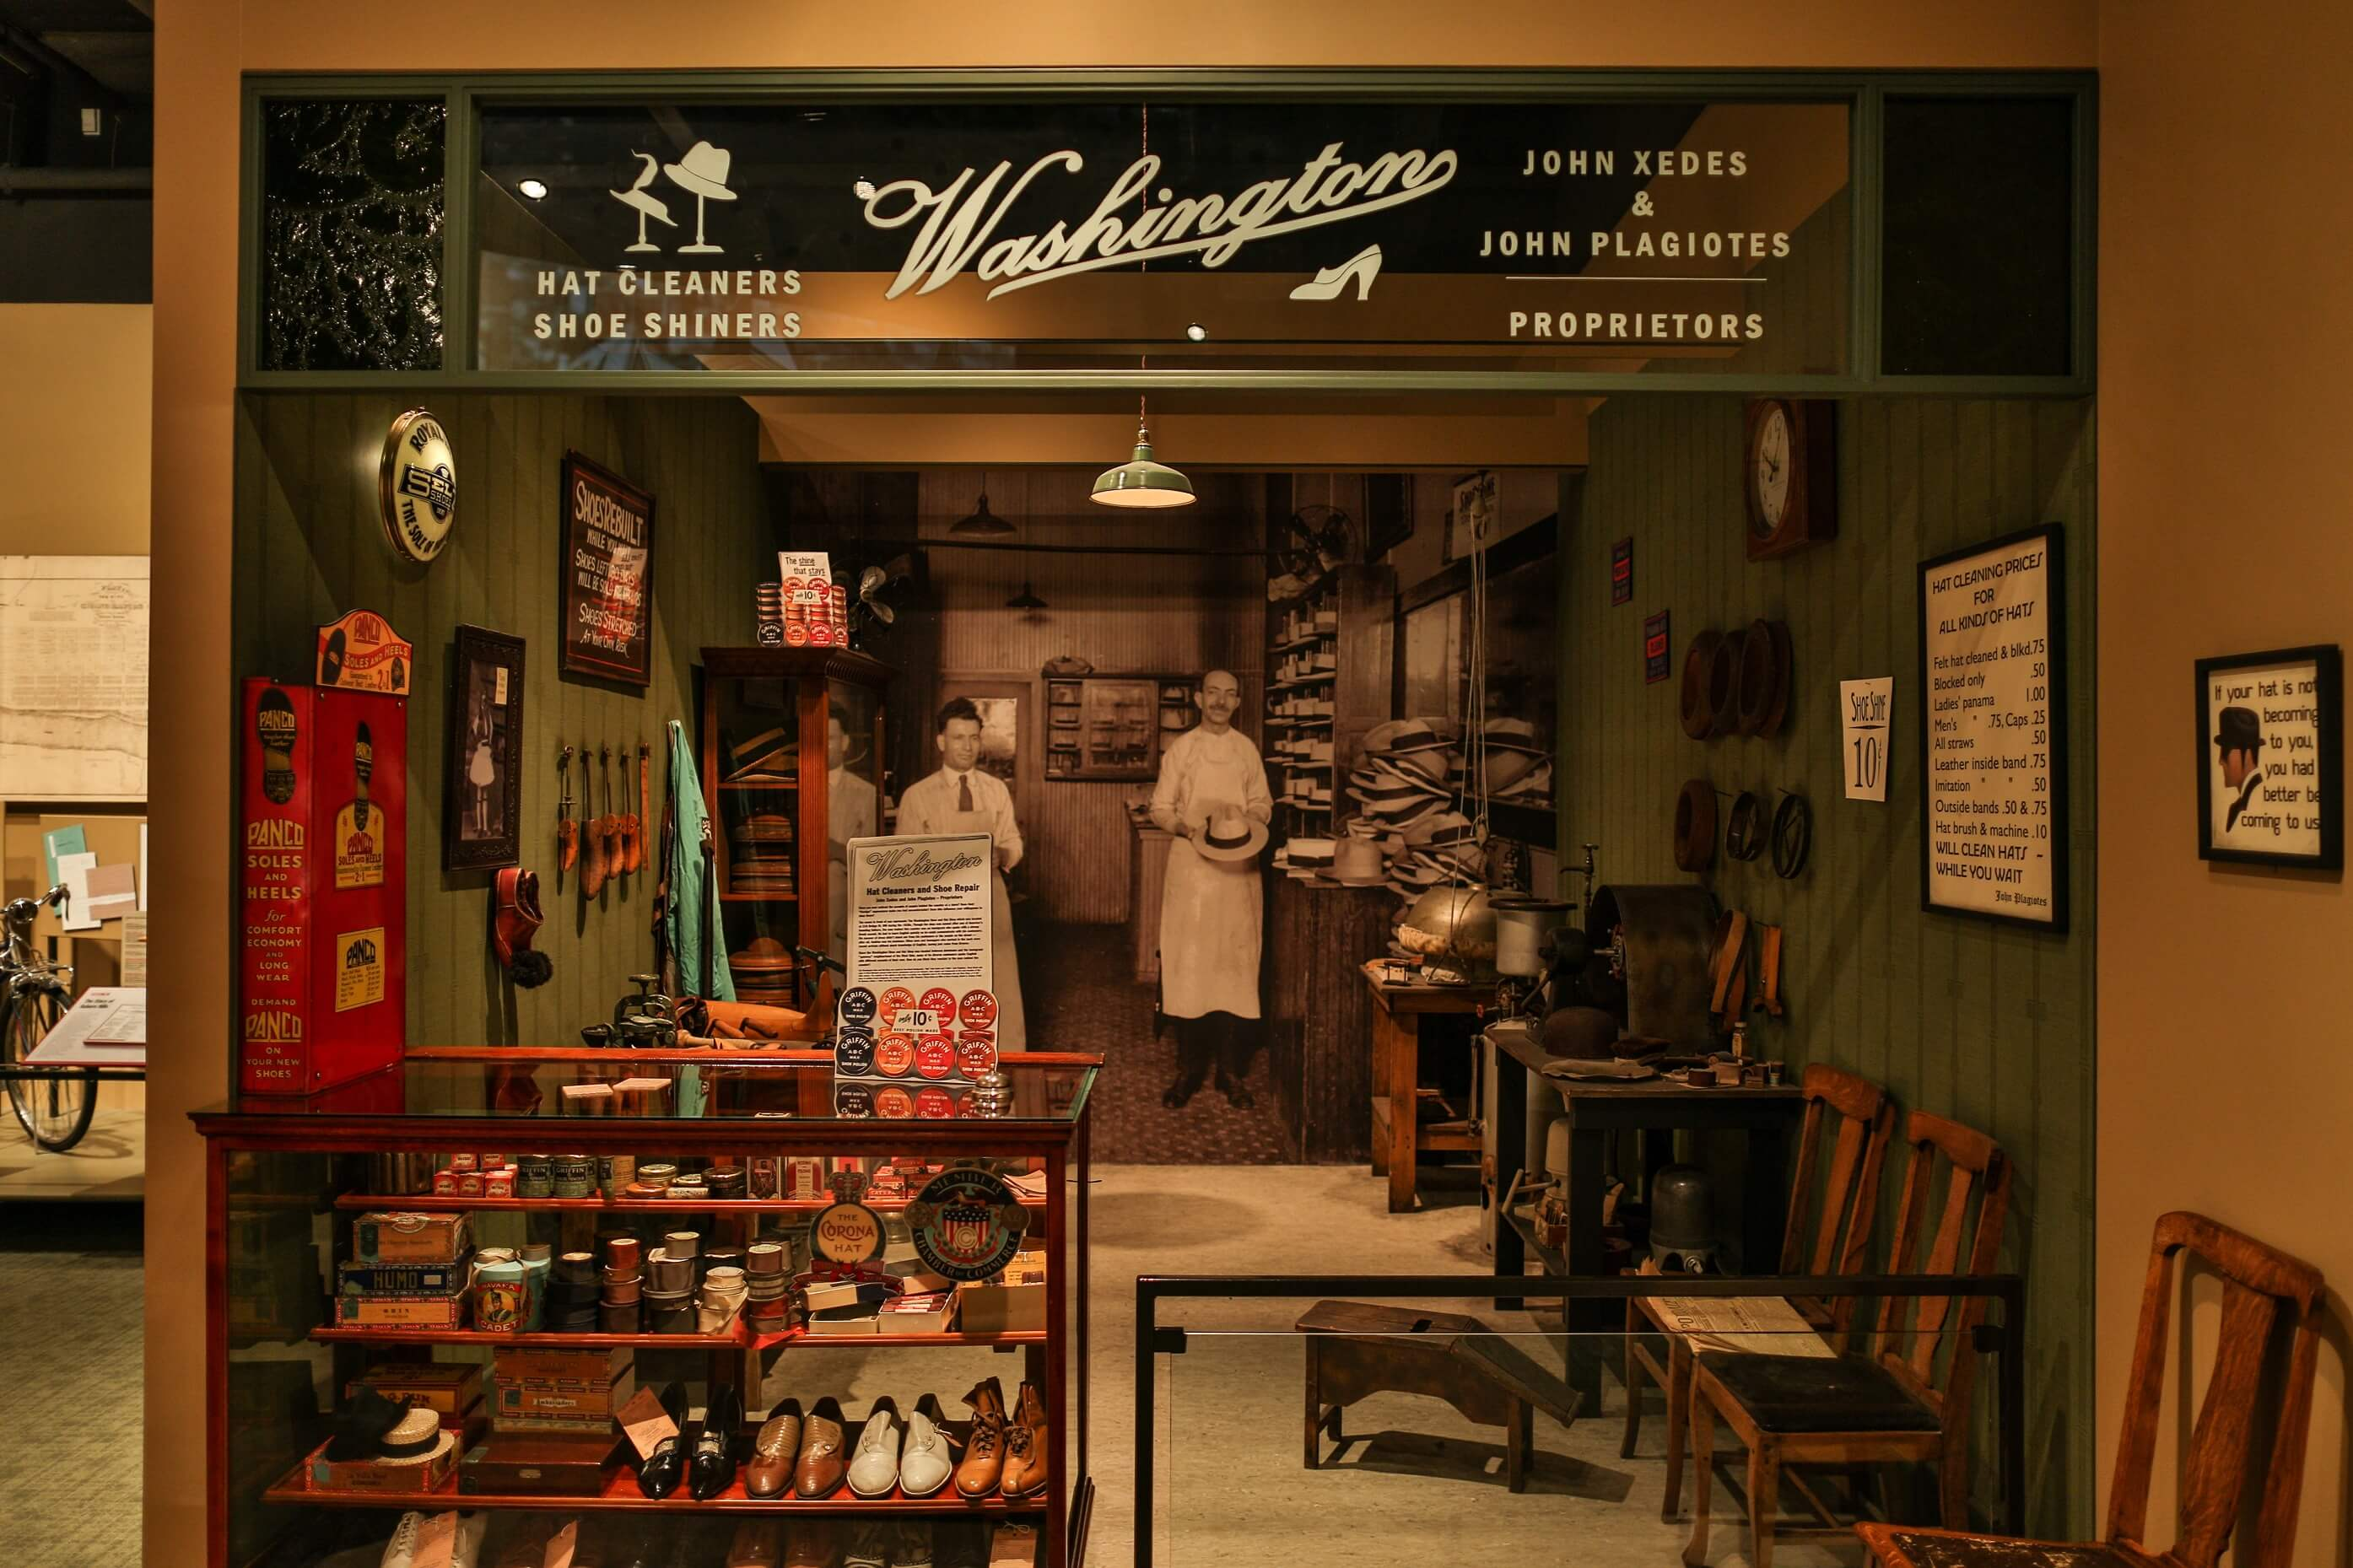 Hat cleaners and shoe shiners store of the Newcomers: People of This Place exhibition